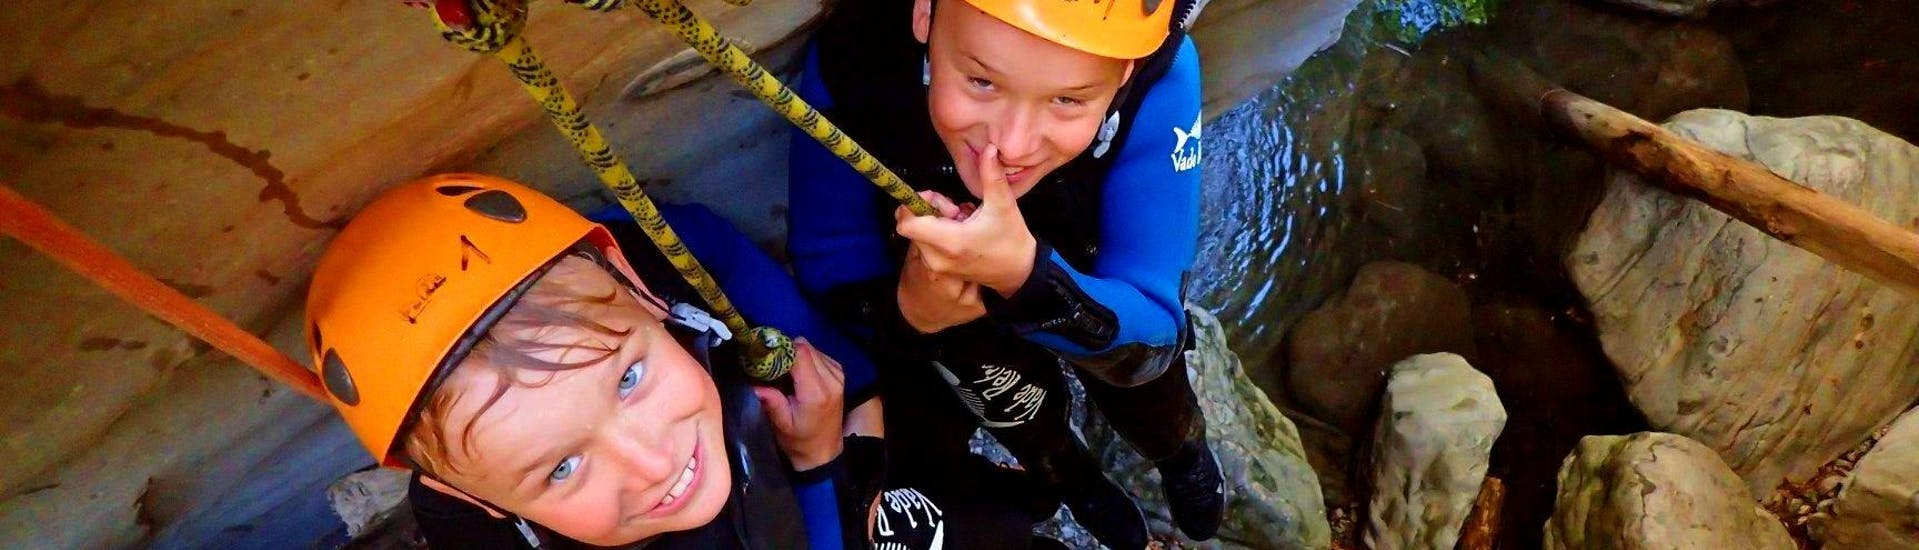 Two children are brought down to the water during Canyoning in the Torrente San Michele - Family Fun organized by Skyclimber.